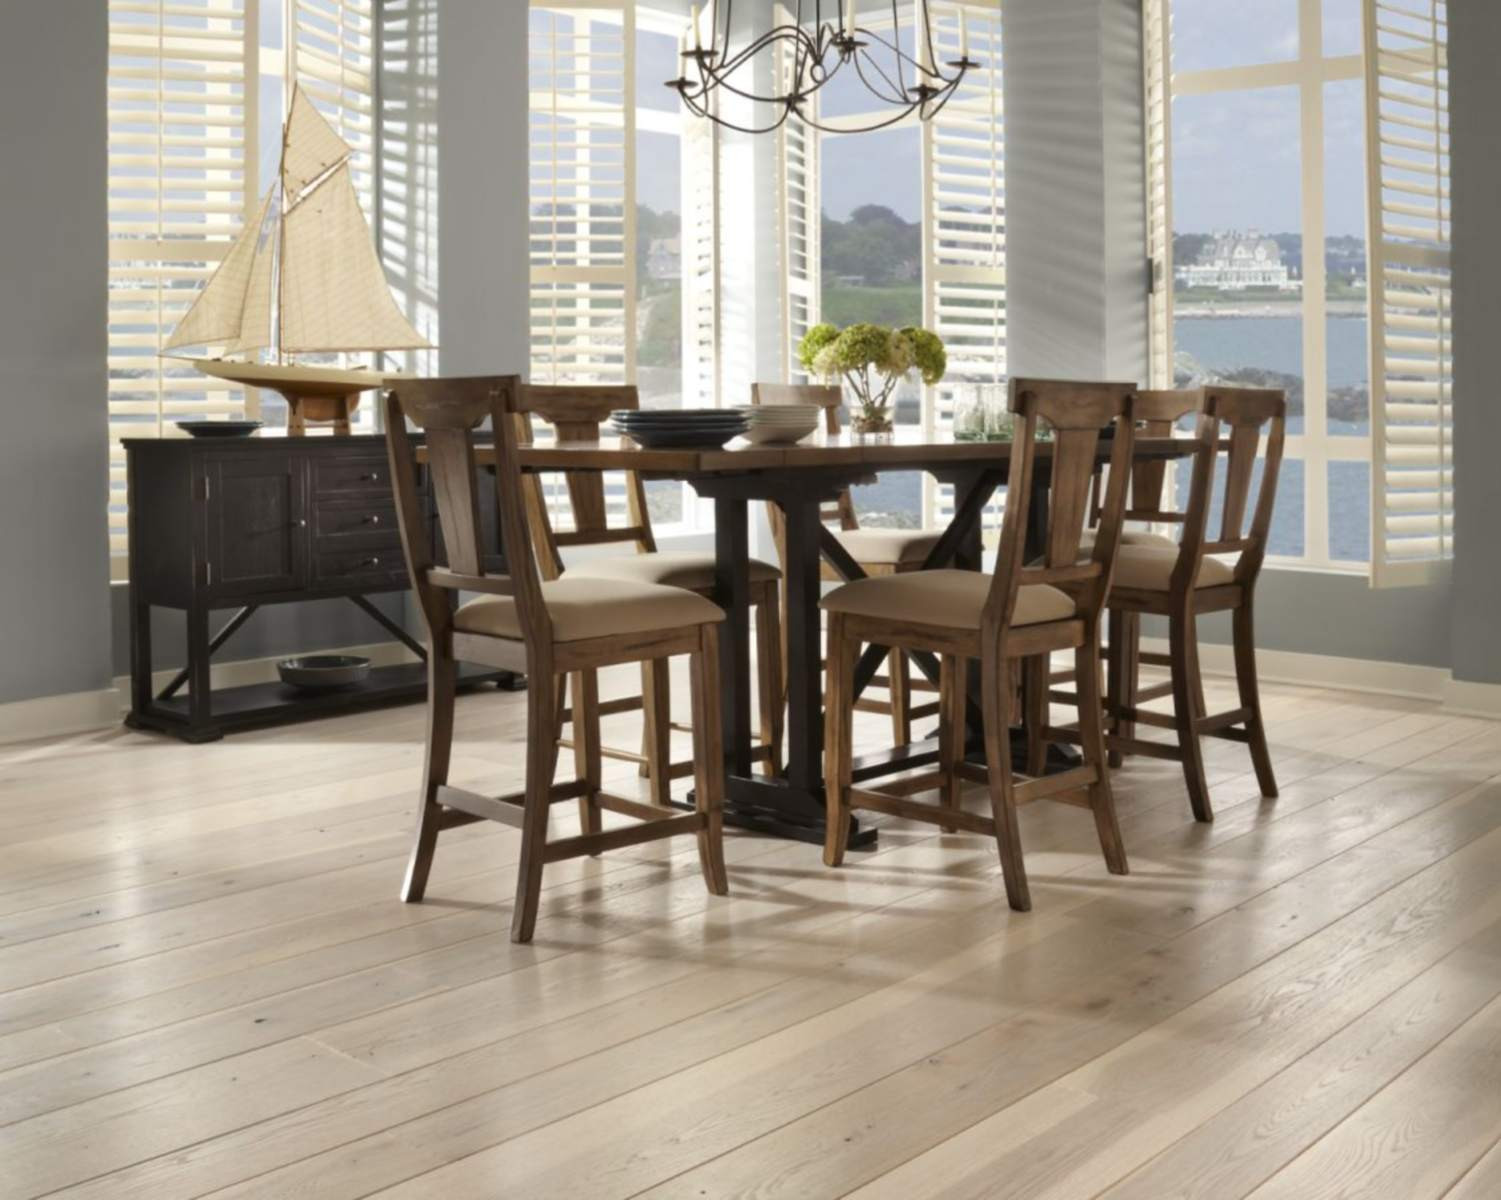 wide plank hardwood flooring unfinished of top 5 brands for solid hardwood flooring intended for a dining room with carlisle hickorys wide plank flooring